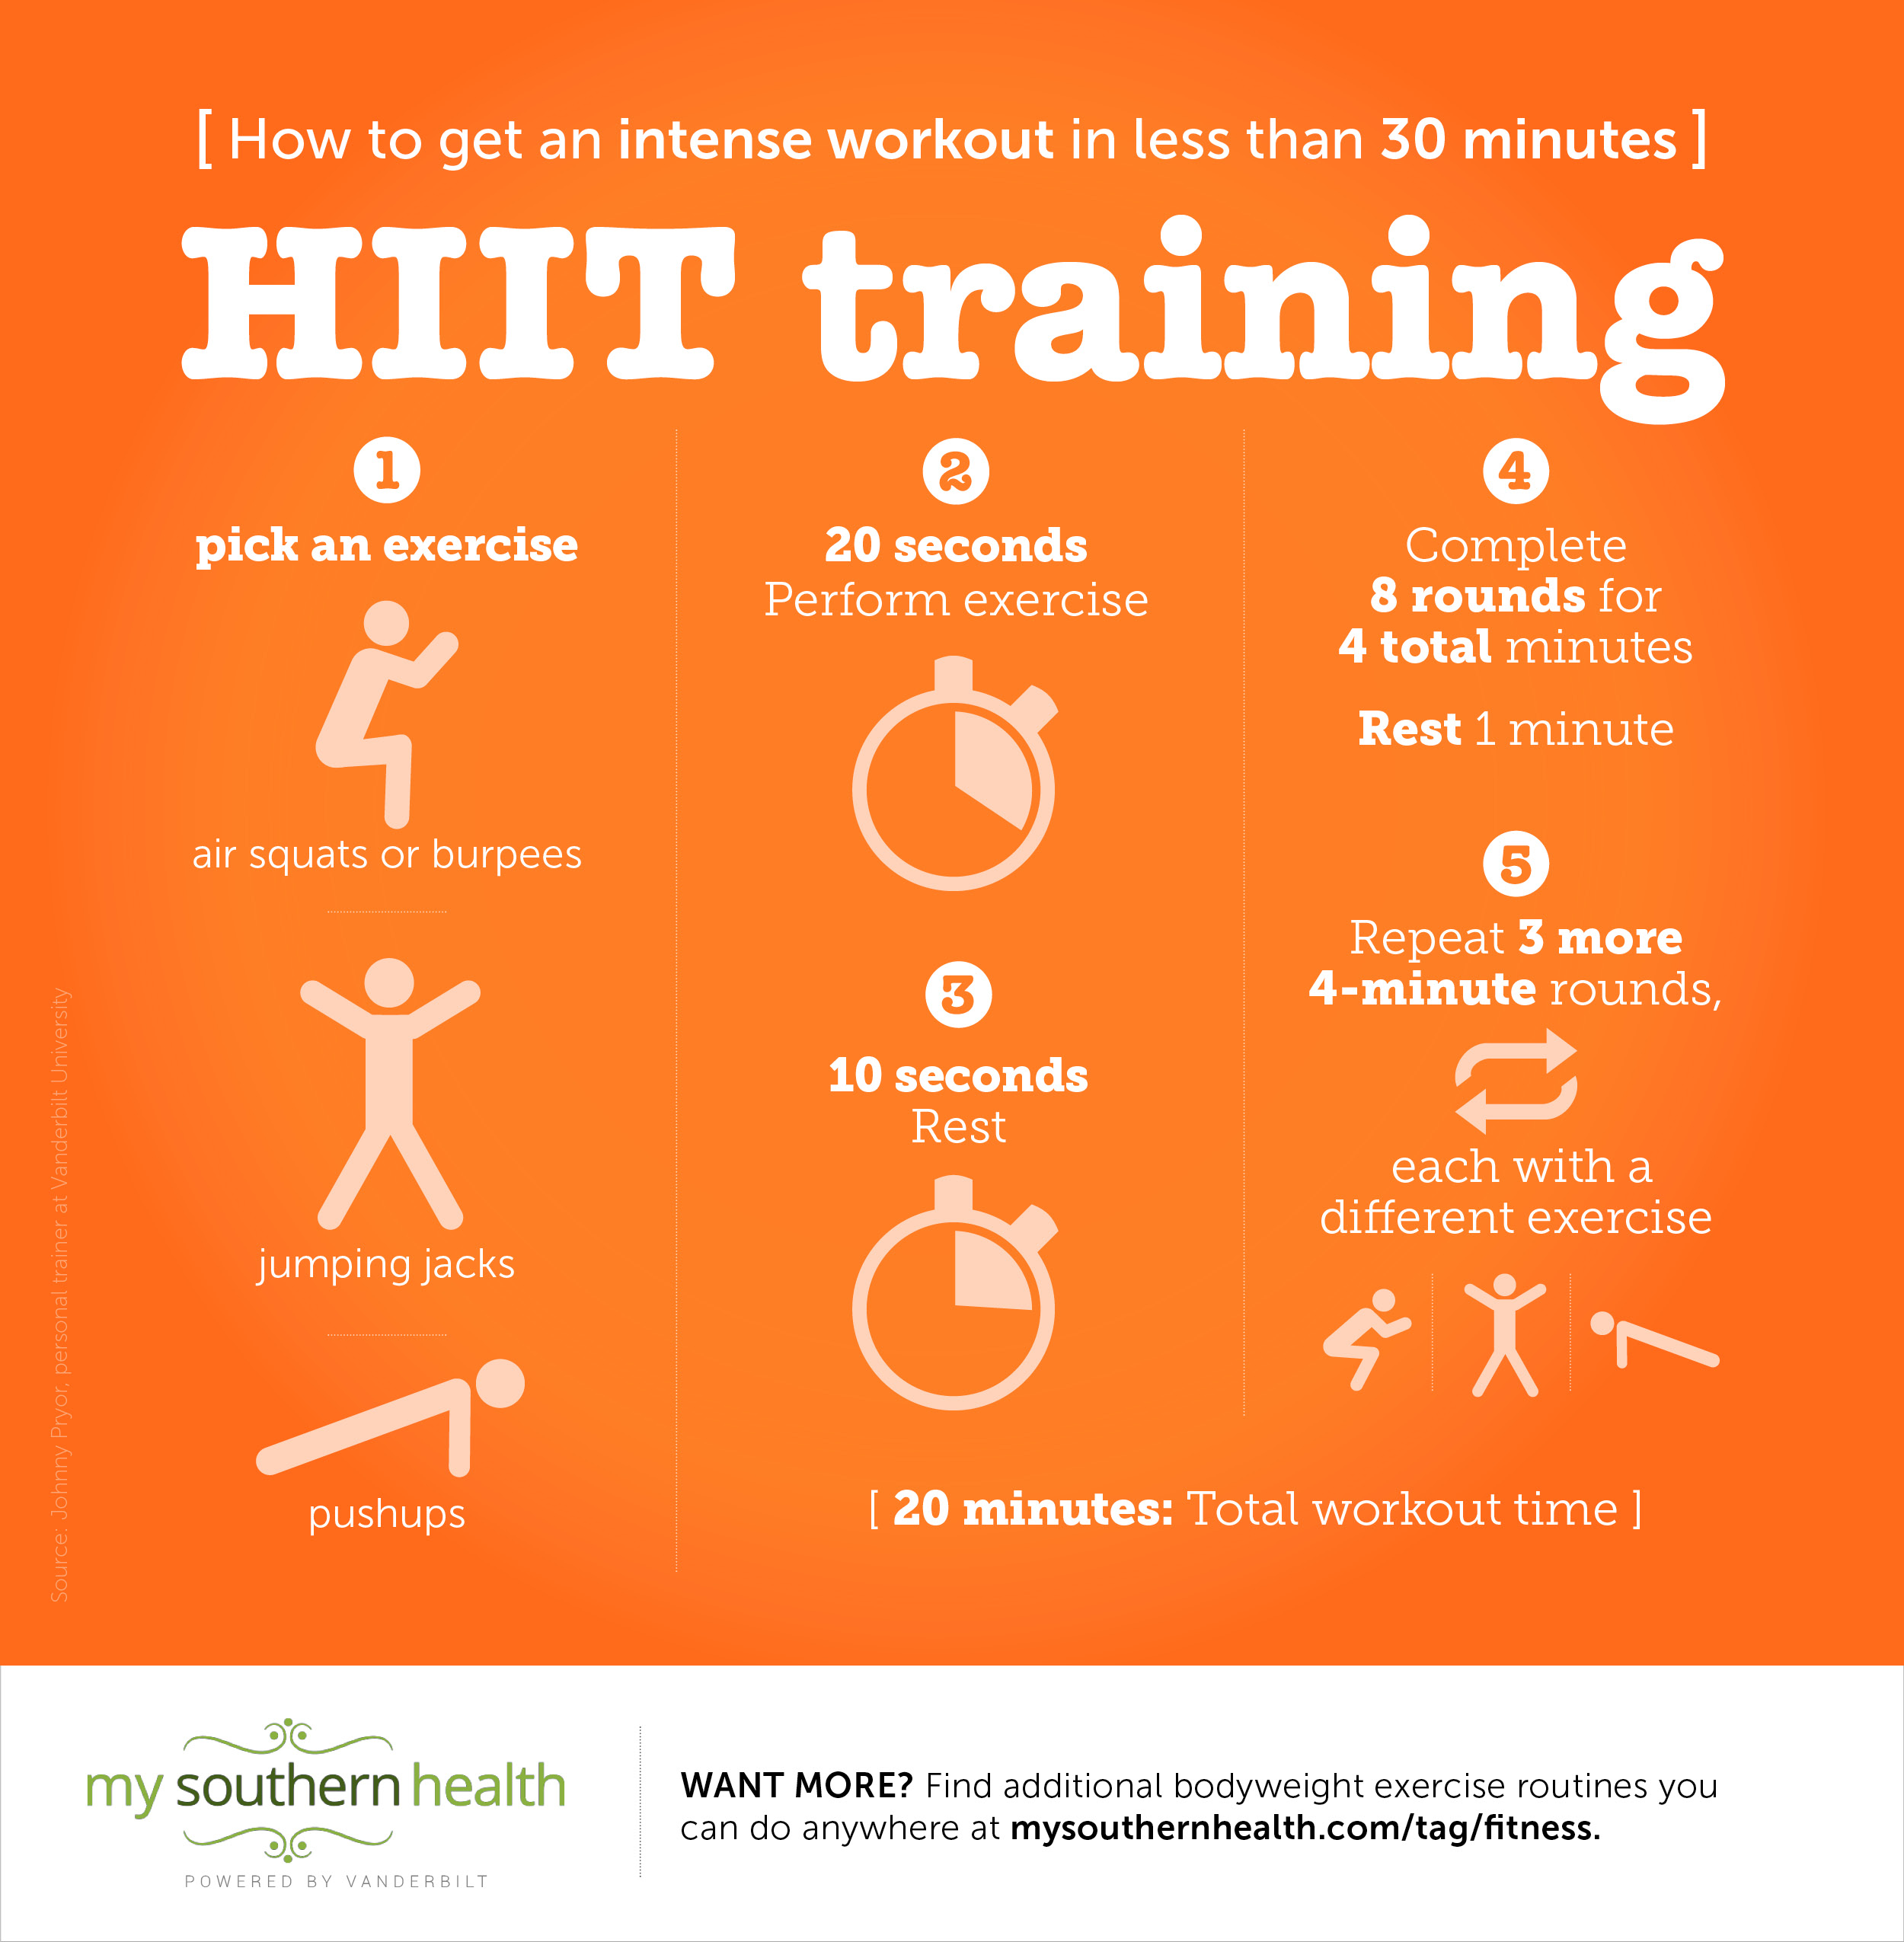 HIIT training tips for a 30 minute workout